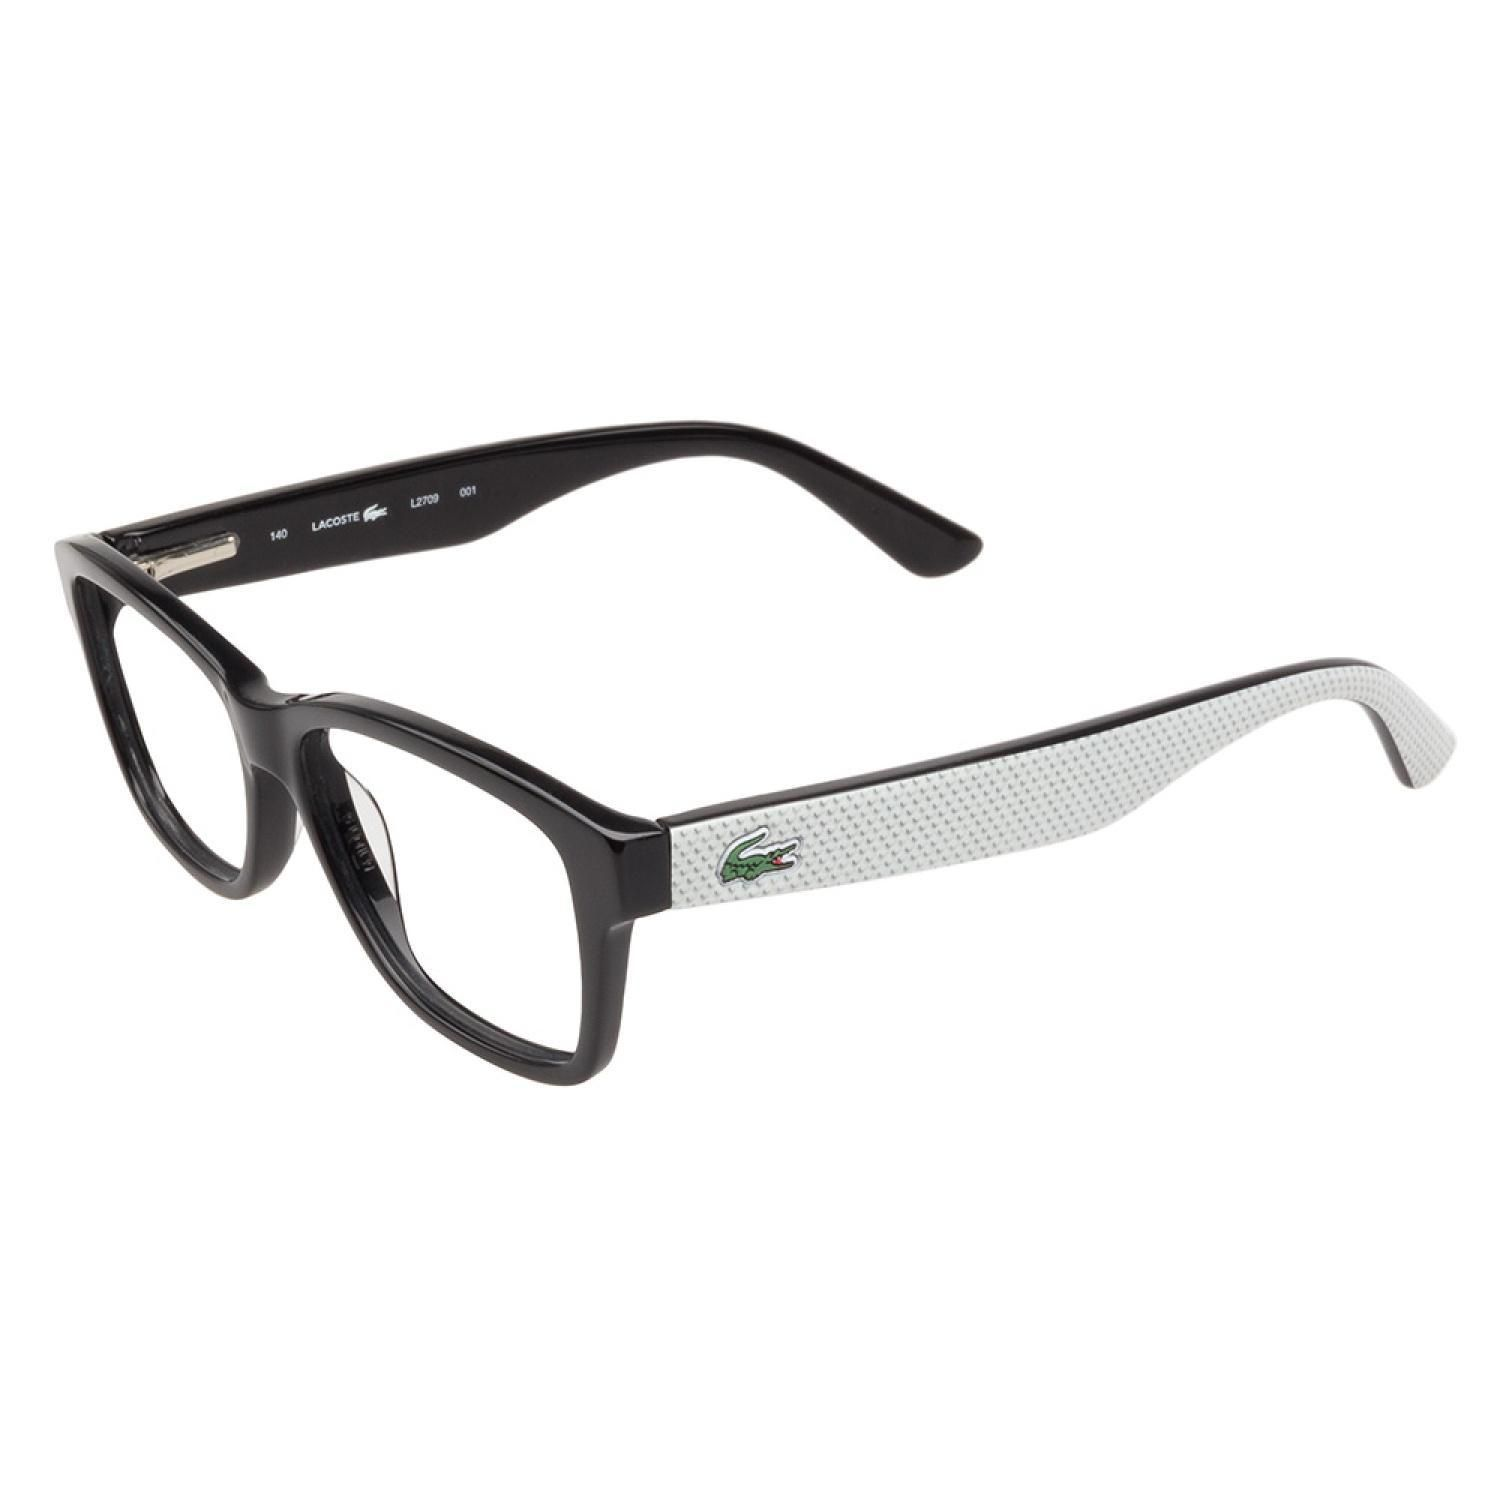 Lacoste L2709 001 Prescription Eyeglasses Lacoste, Eyeglasses, Glasses,  Eyewear, Eye Glasses, 62034d414e